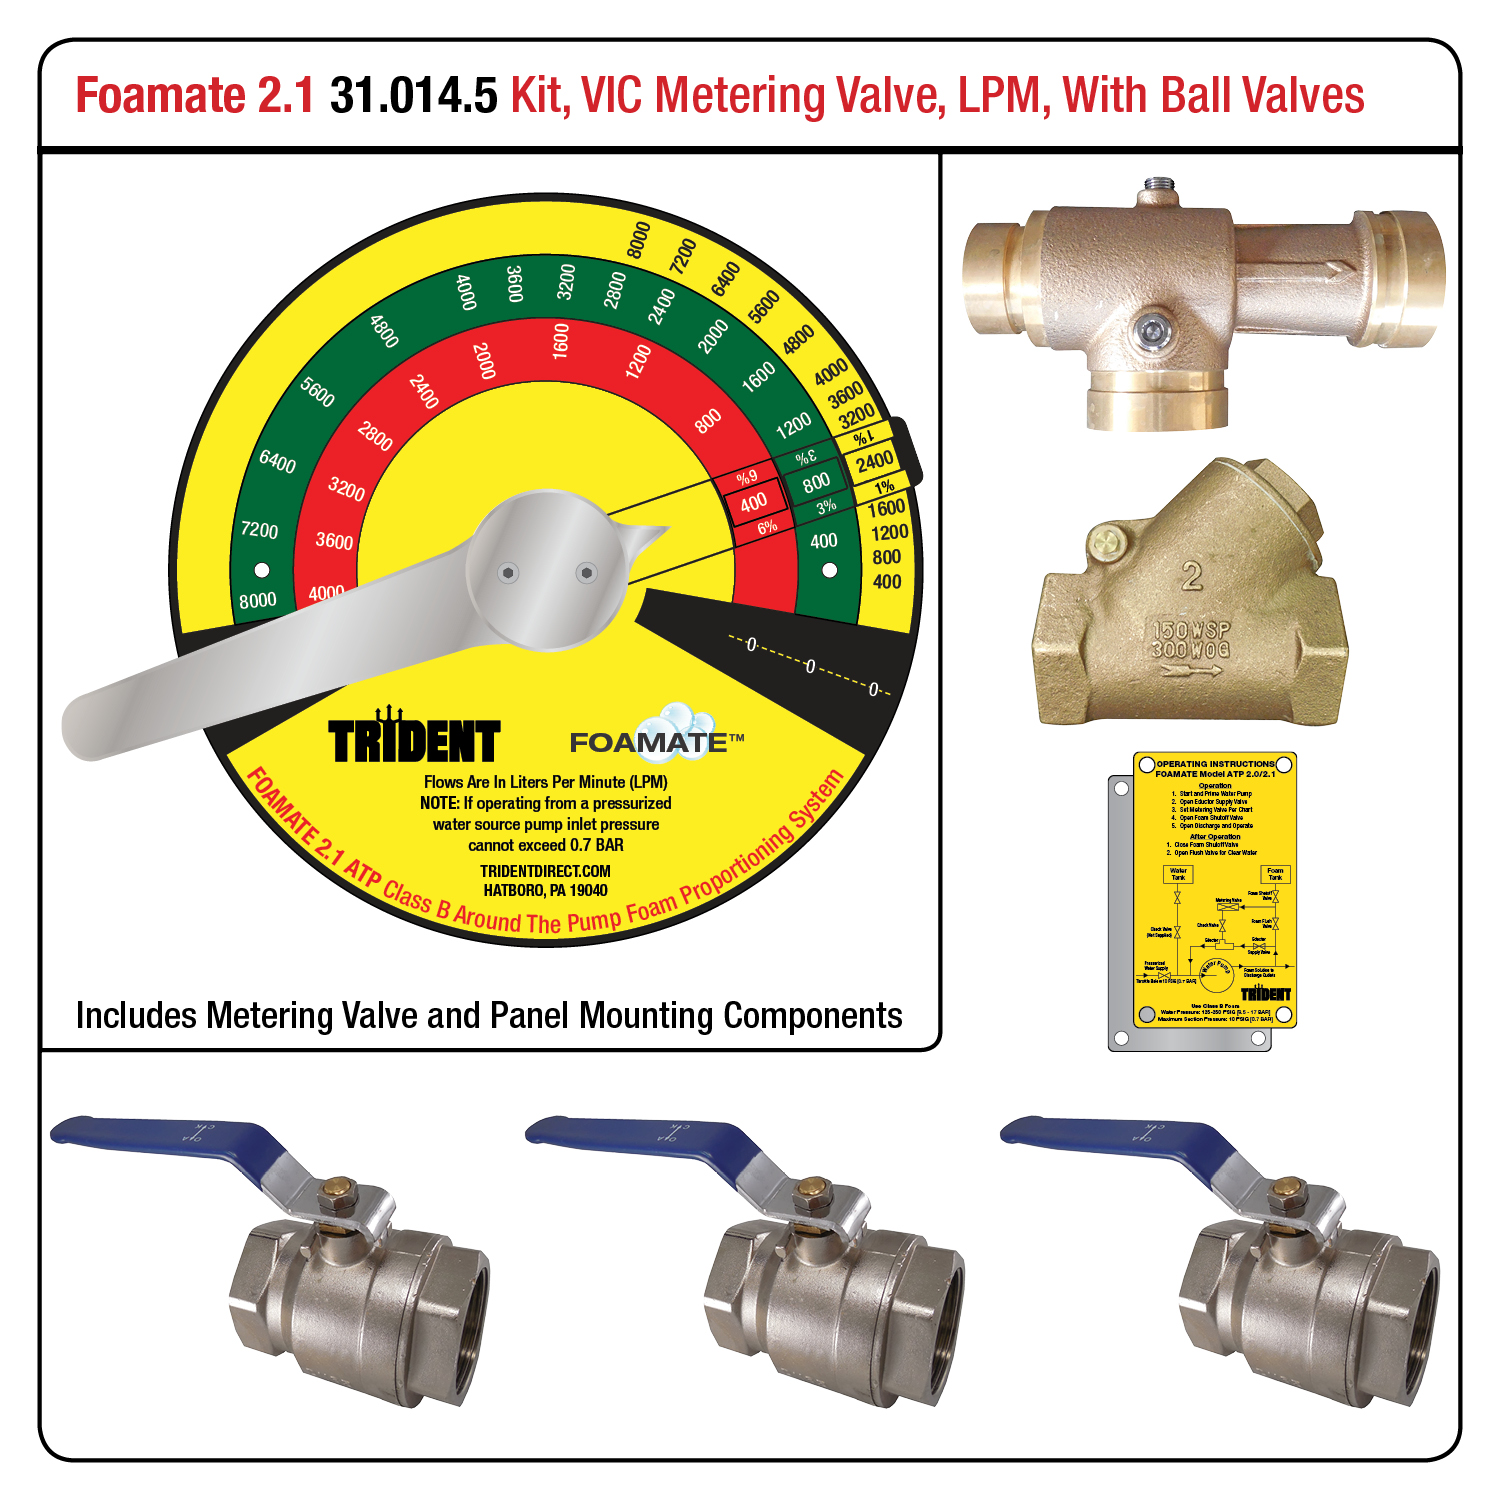 Foamate 2.1 ATP System, Metering Valve with VIC Ends, LPM Flow Rates, w/ Ball Valves